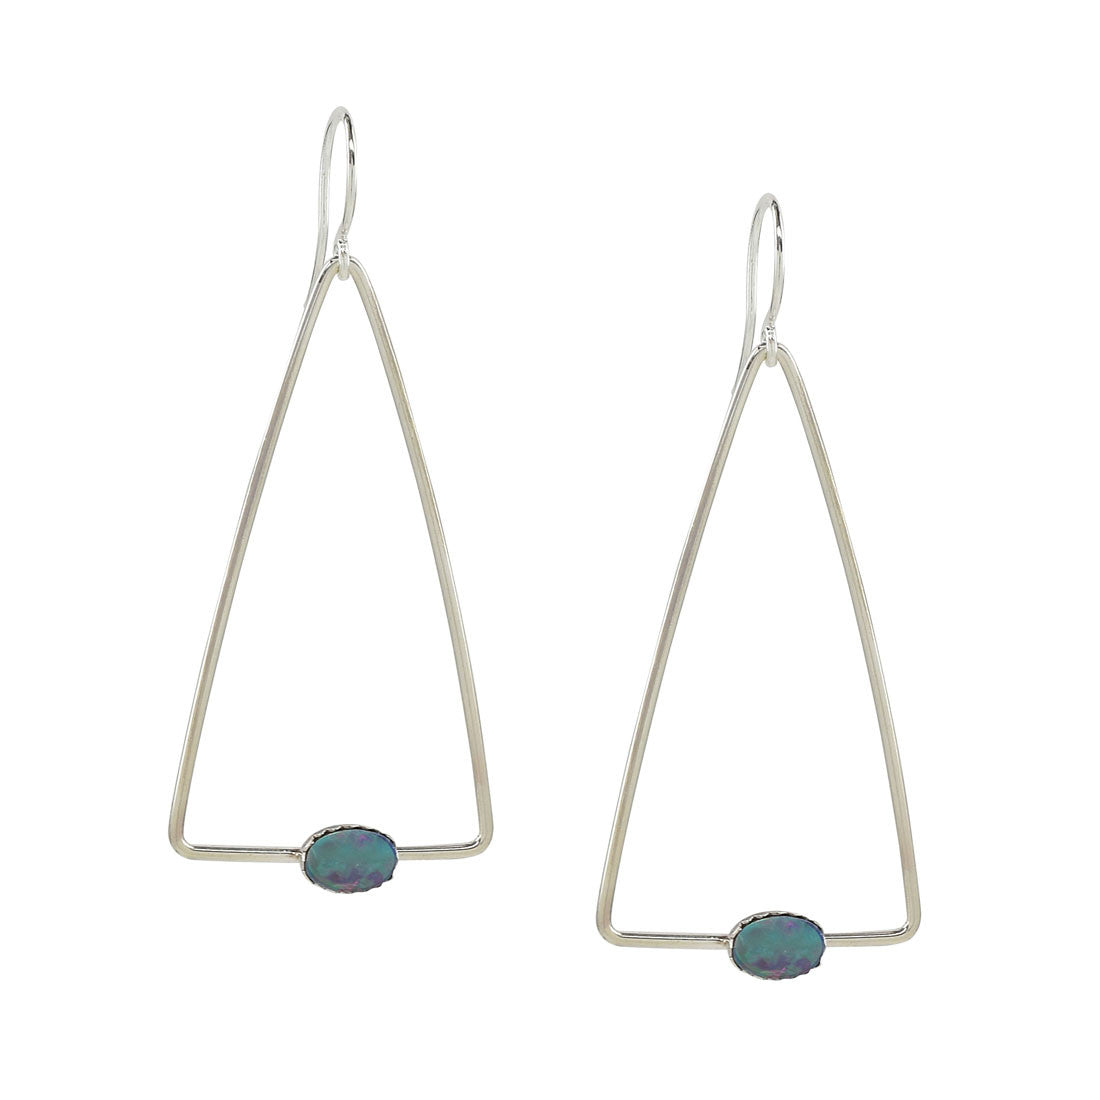 Opal Triangle Earrings - Coachella Celebrity Earrings